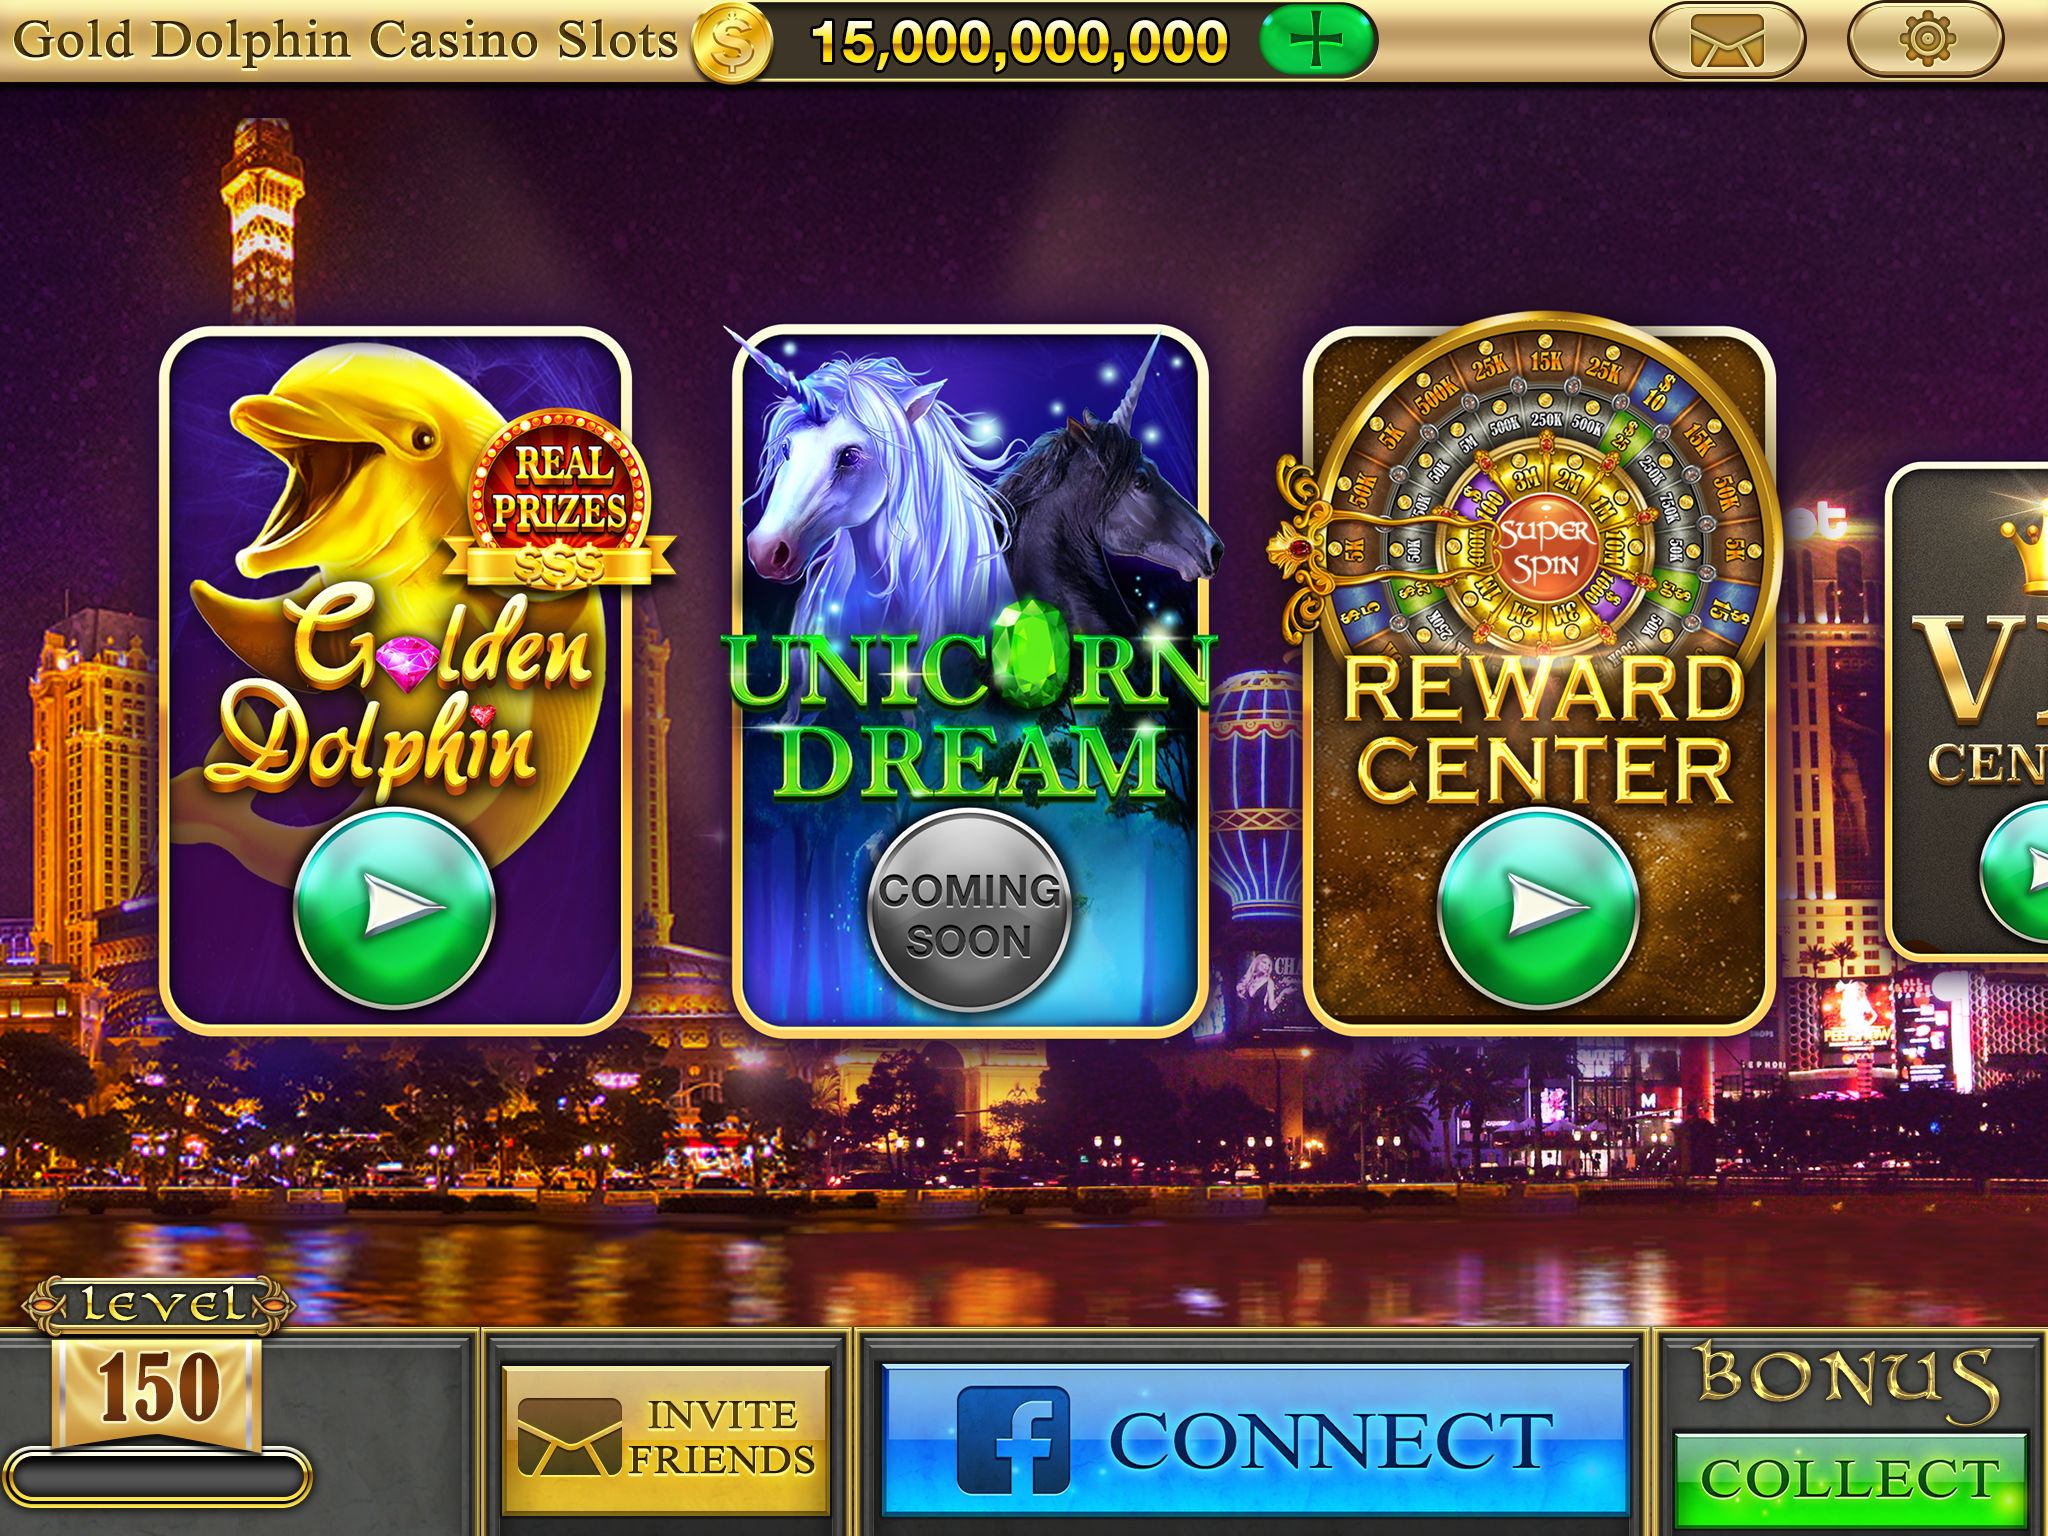 Full tilt poker android casino Visionary iGaming 212970